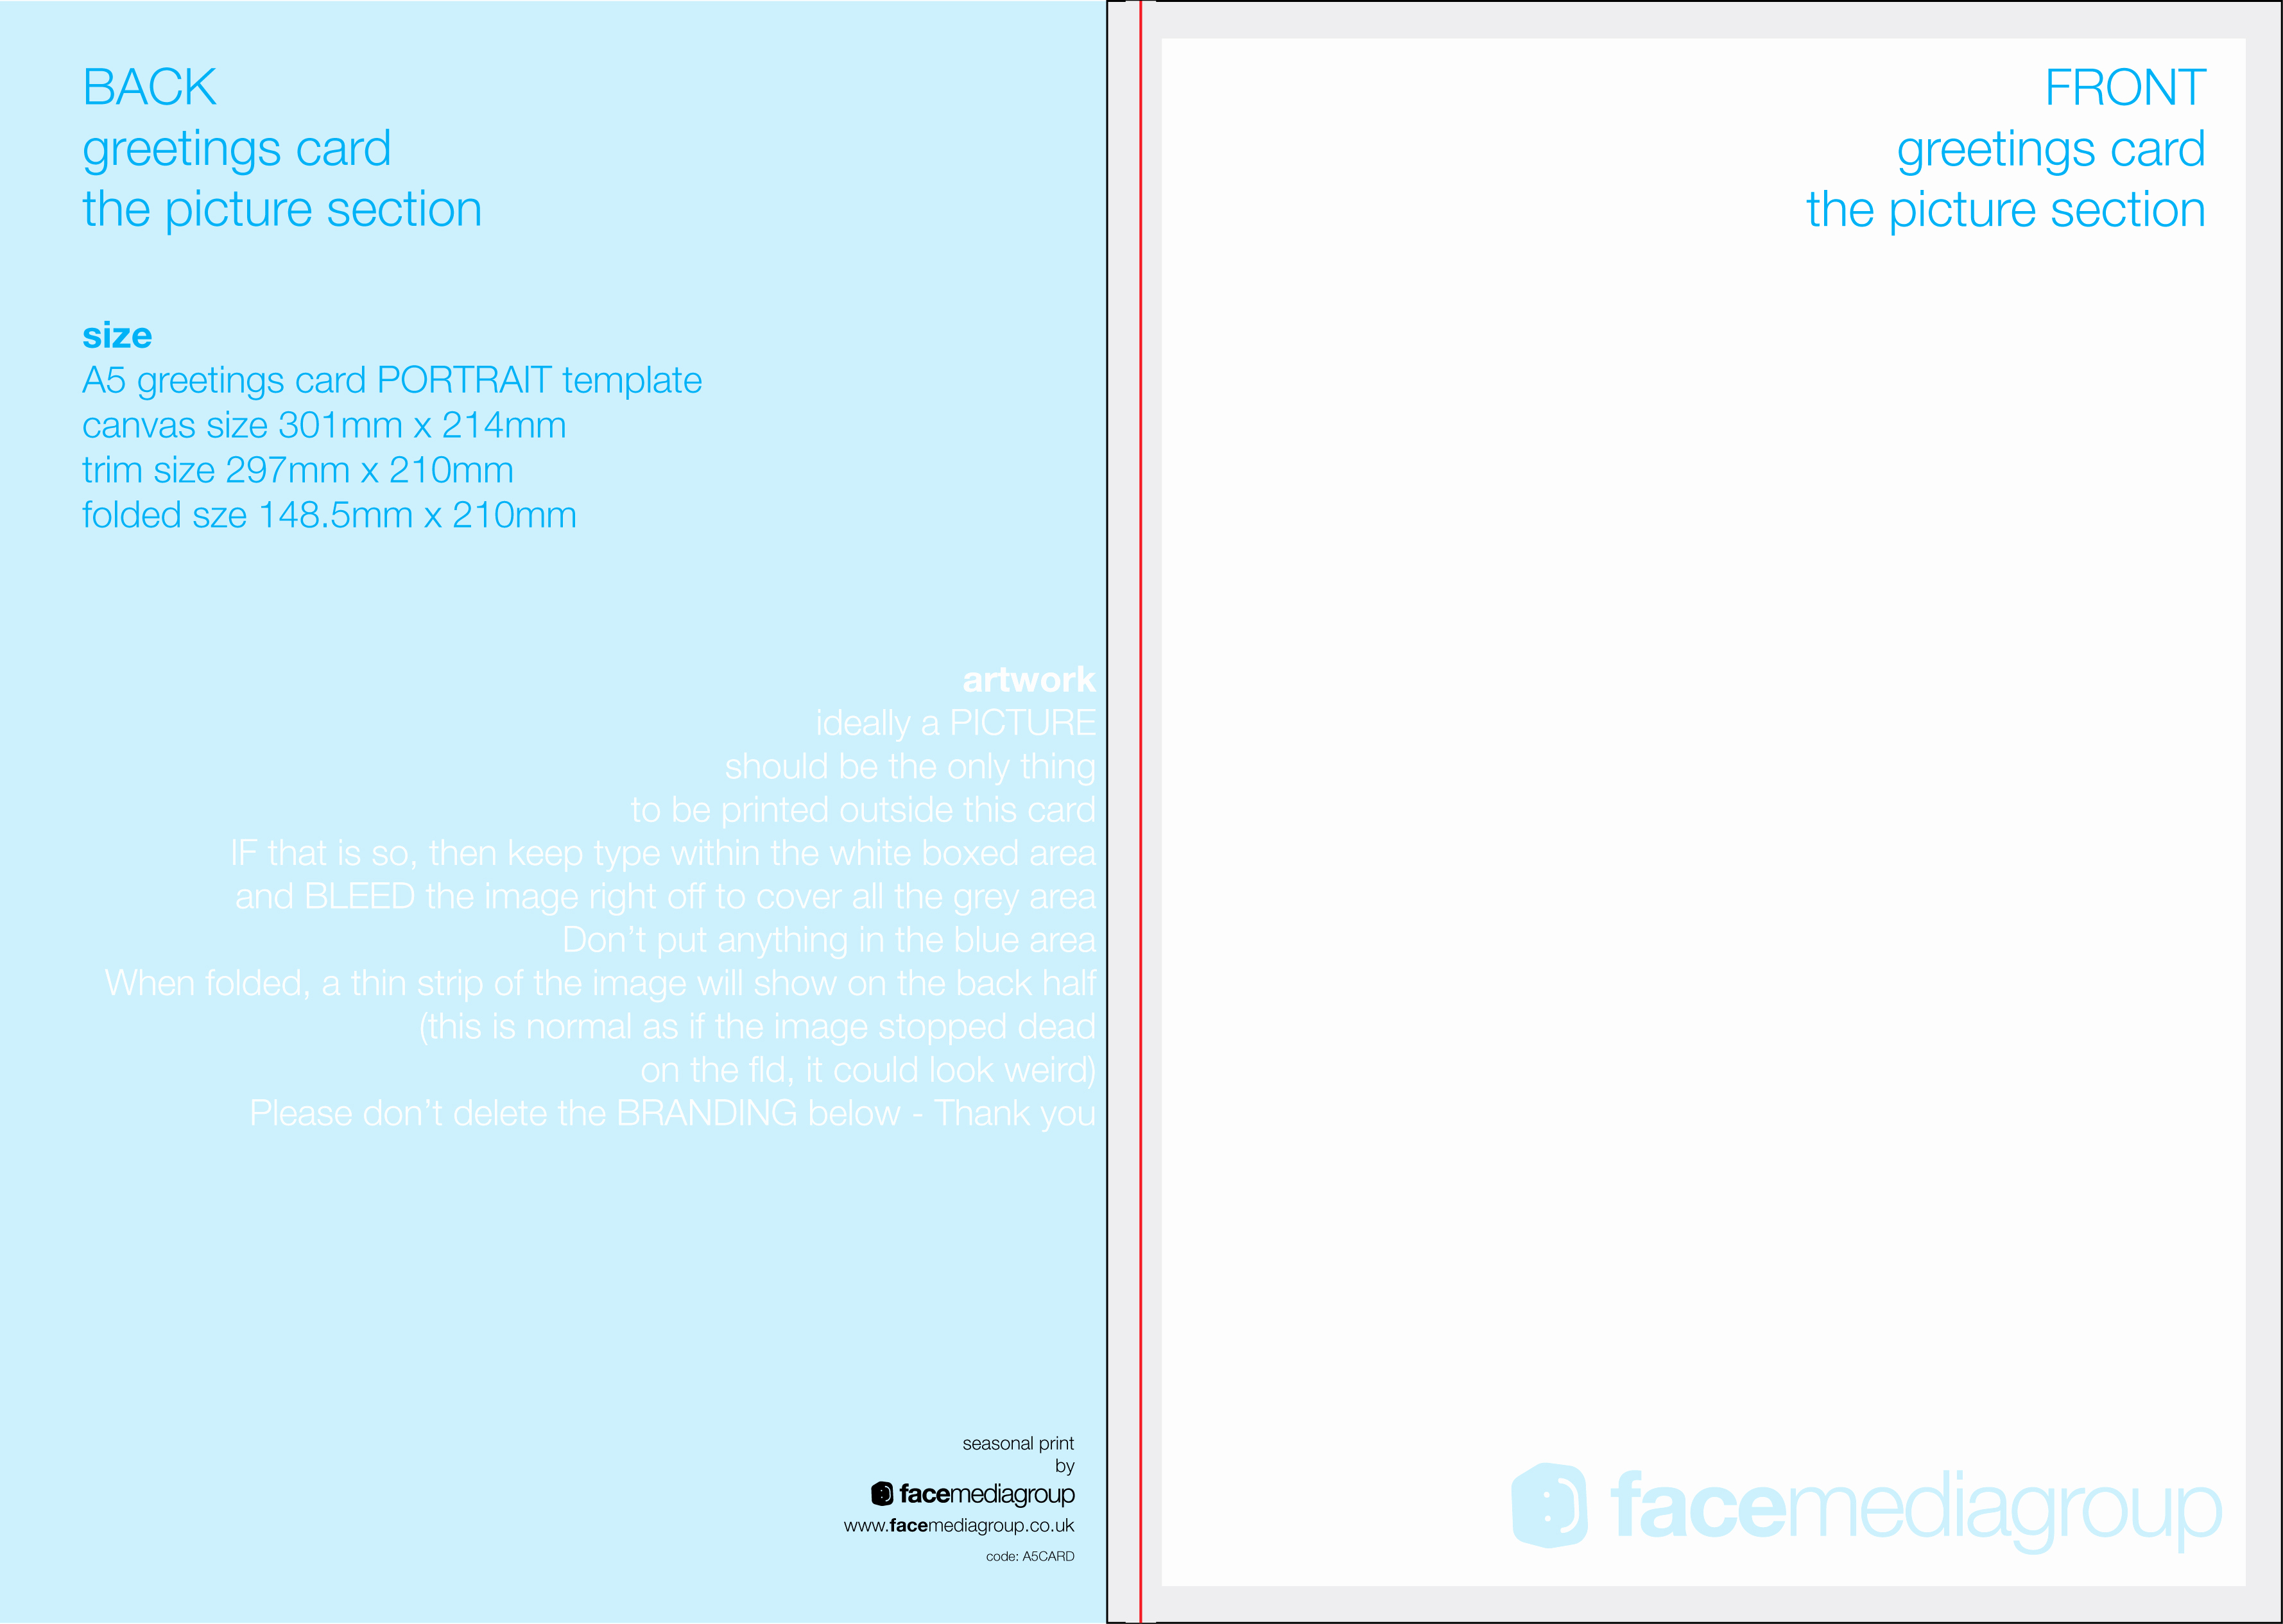 Free Greeting Card Templates Inspirational Free Blank Greetings Card Artwork Templates for Download